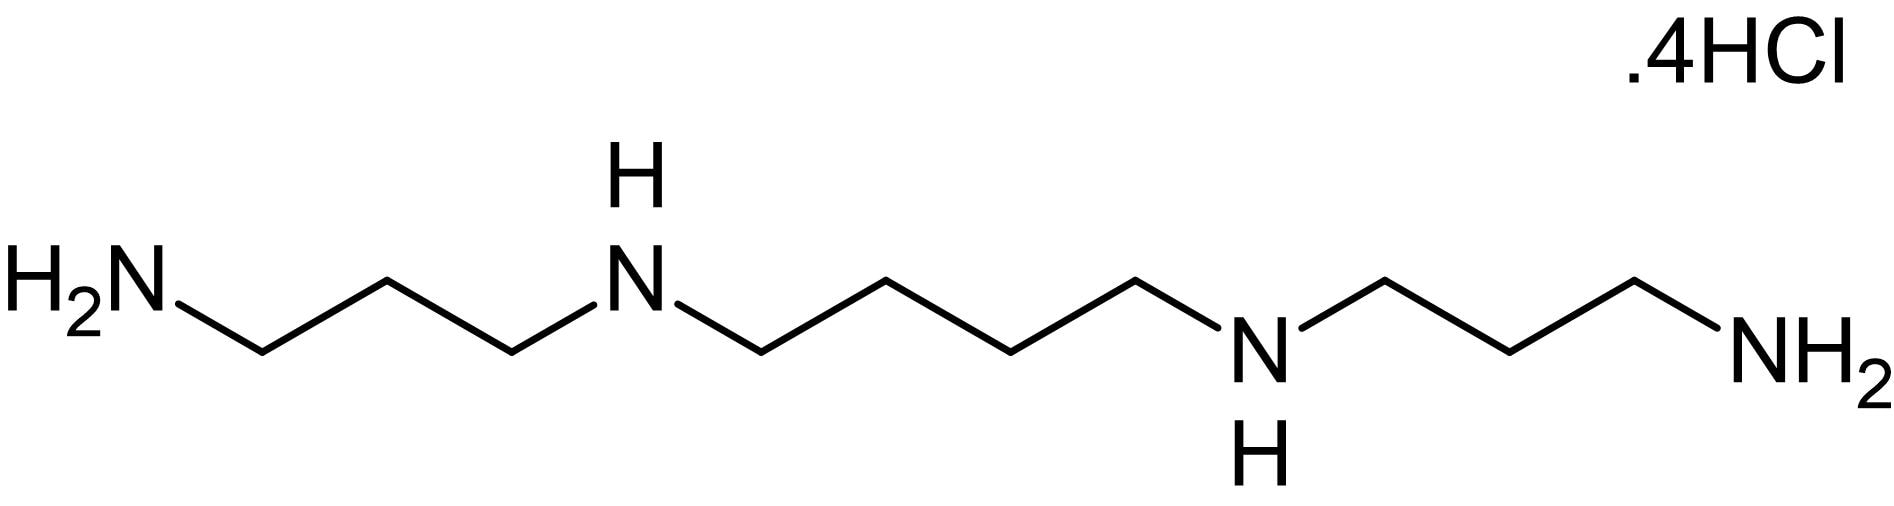 Chemical Structure - Spermine tetrahydrochloride, polyamine used for precipitation of DNA (ab146523)